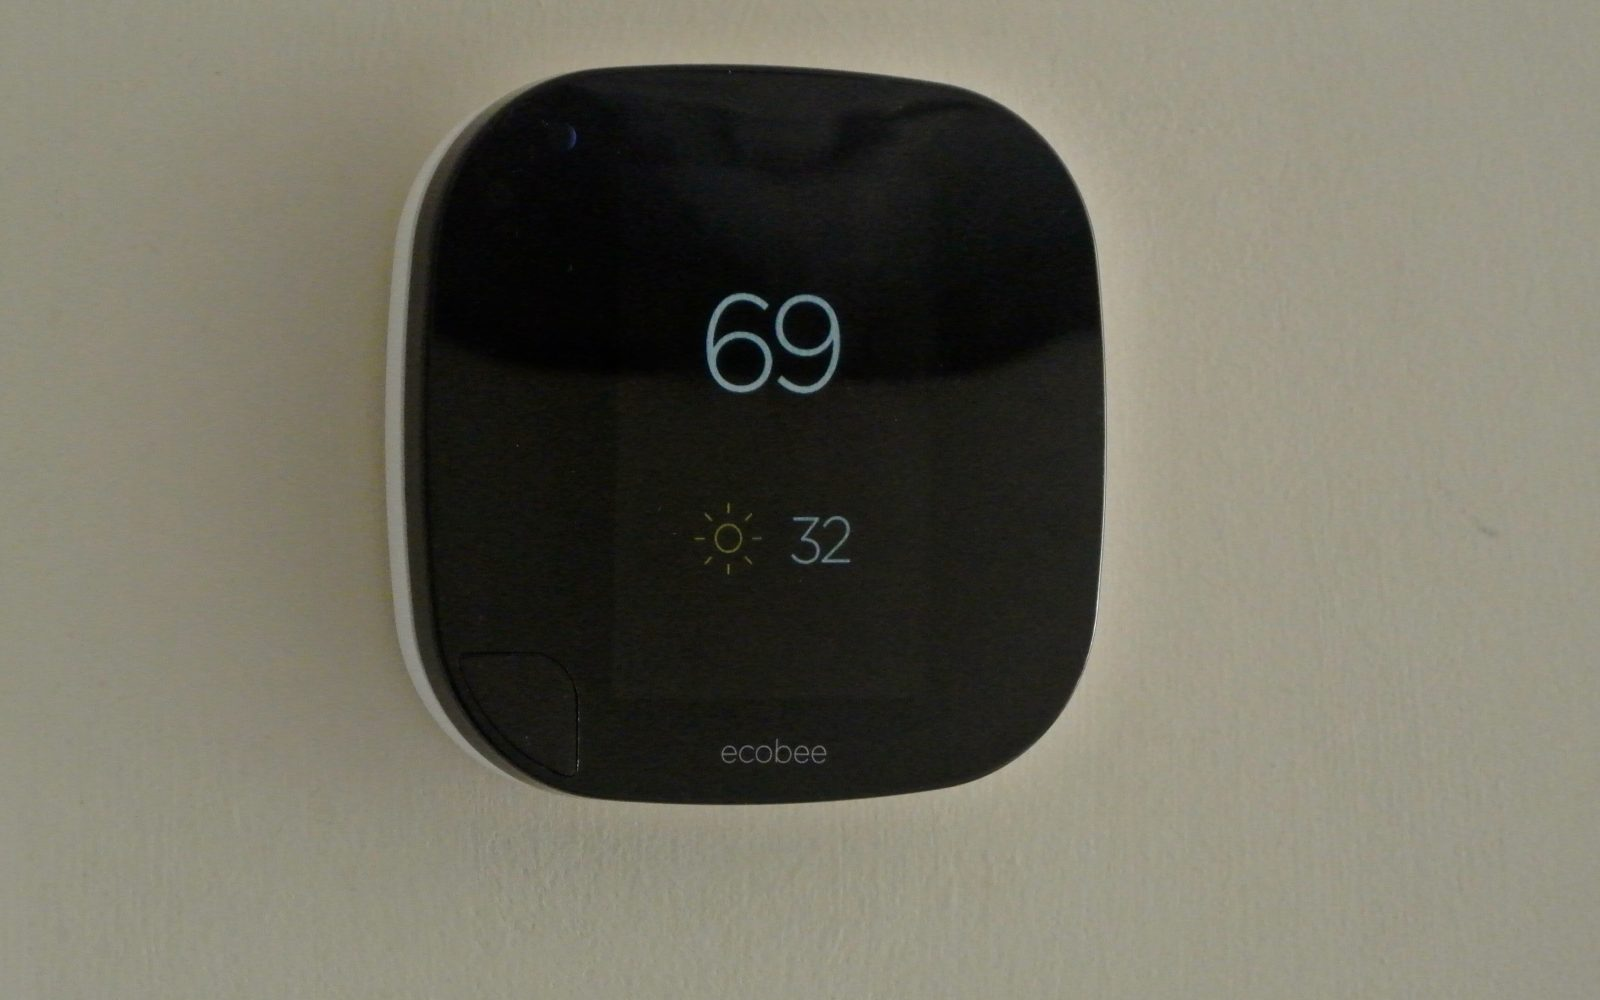 Review Homekit Enabled Ecobee3 Wi Fi Thermostat W Remote Sensors Rescued Attachment Radfanwiringwithswitchjpg Is Perfect For Siri Fans